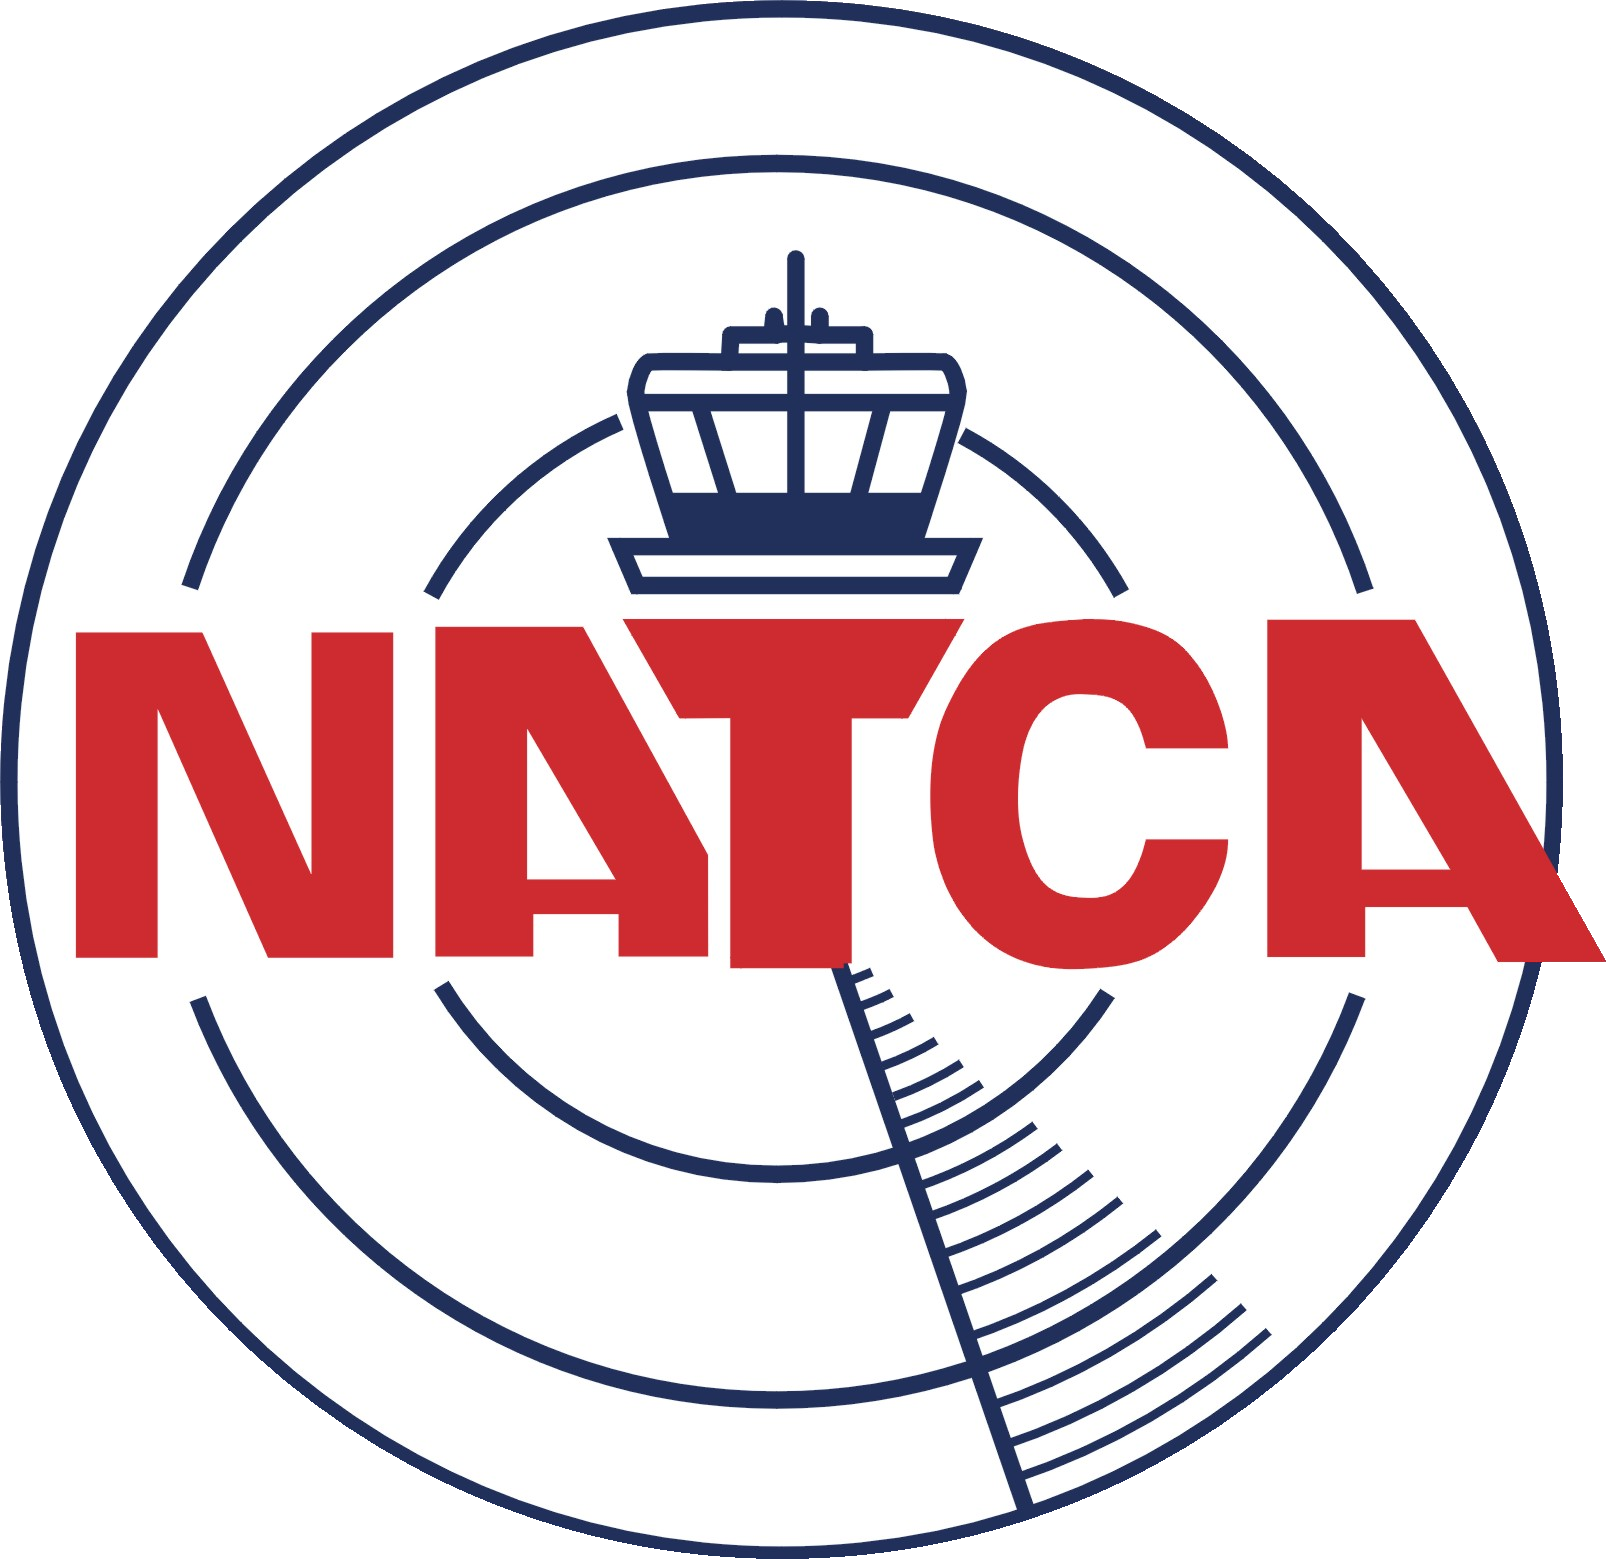 Spotlight on the Label NATCA